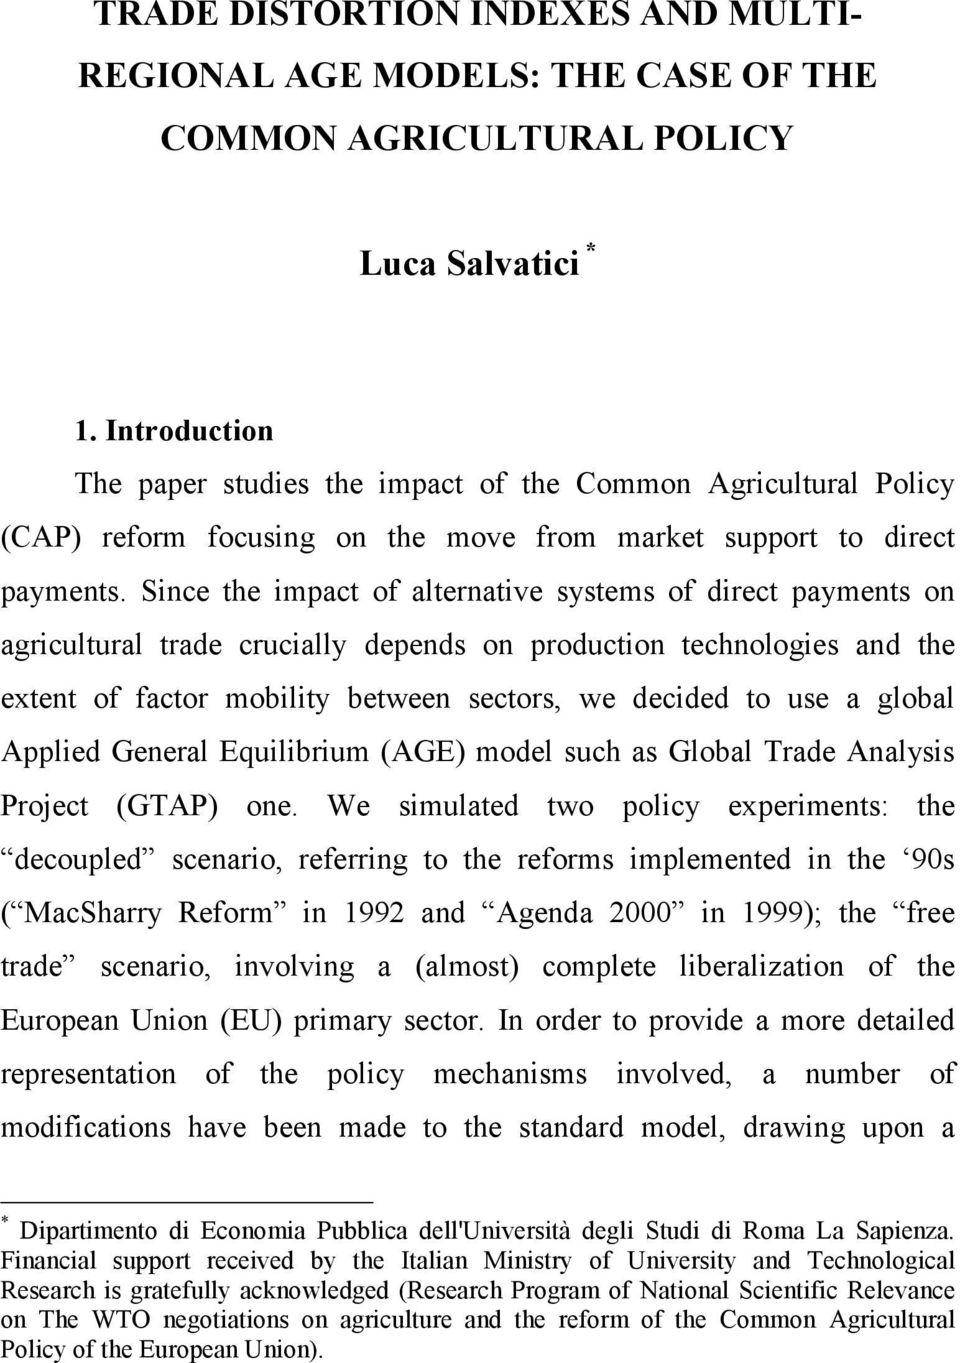 Since the impact of alternative systems of direct payments on agricultural trade crucially depends on production technologies and the extent of factor mobility between sectors, we decided to use a